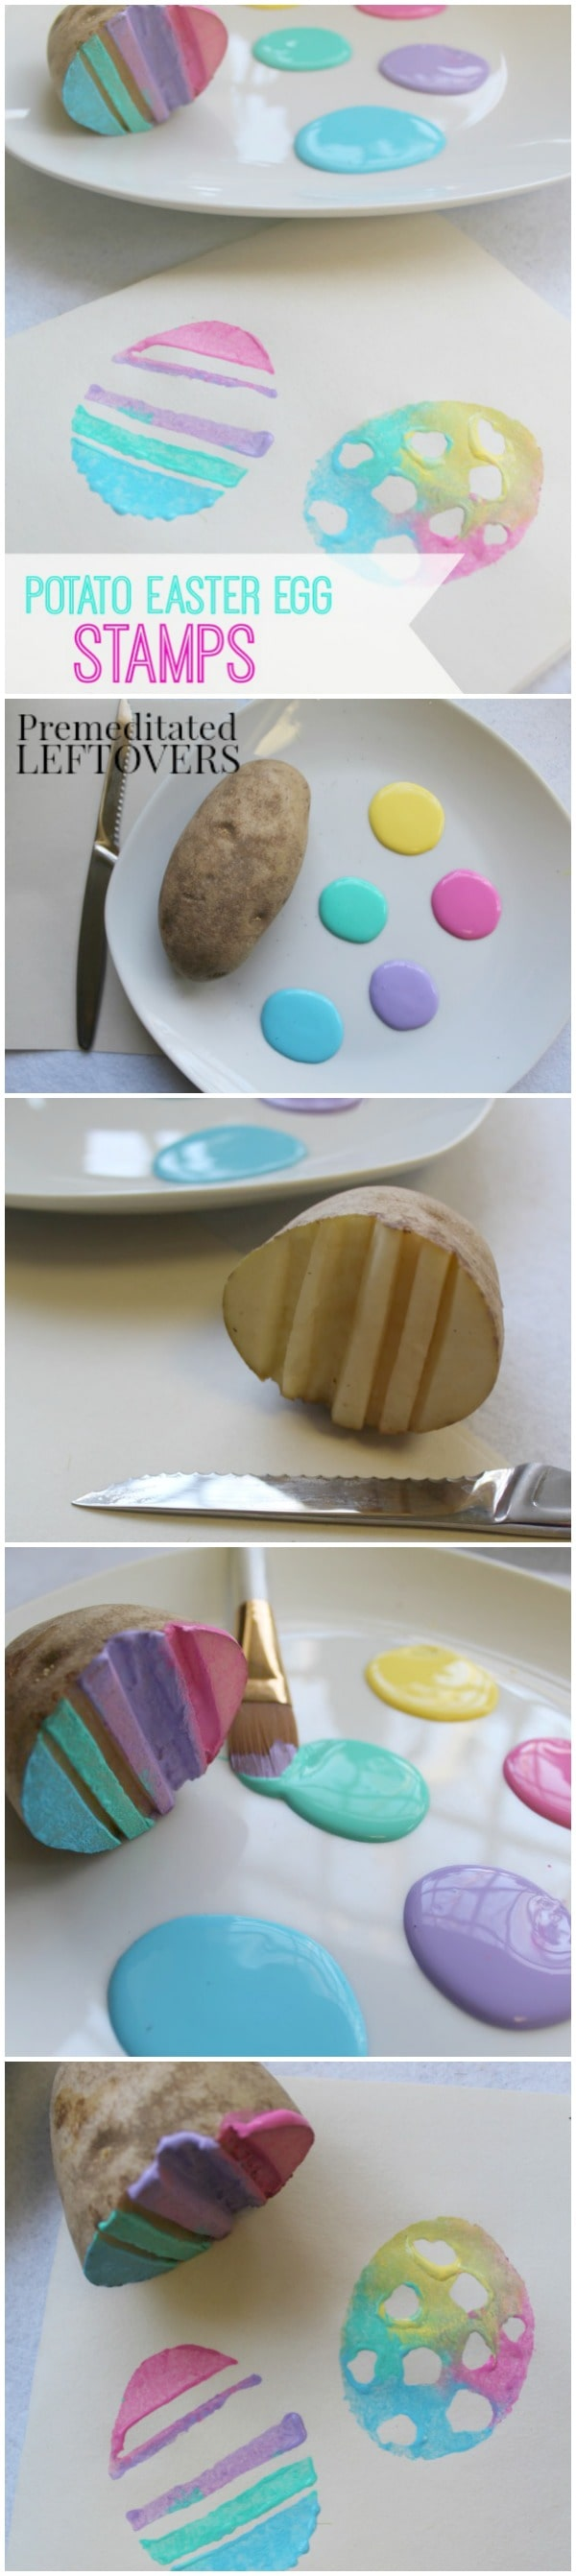 How to make Potato Easter Egg Stamps